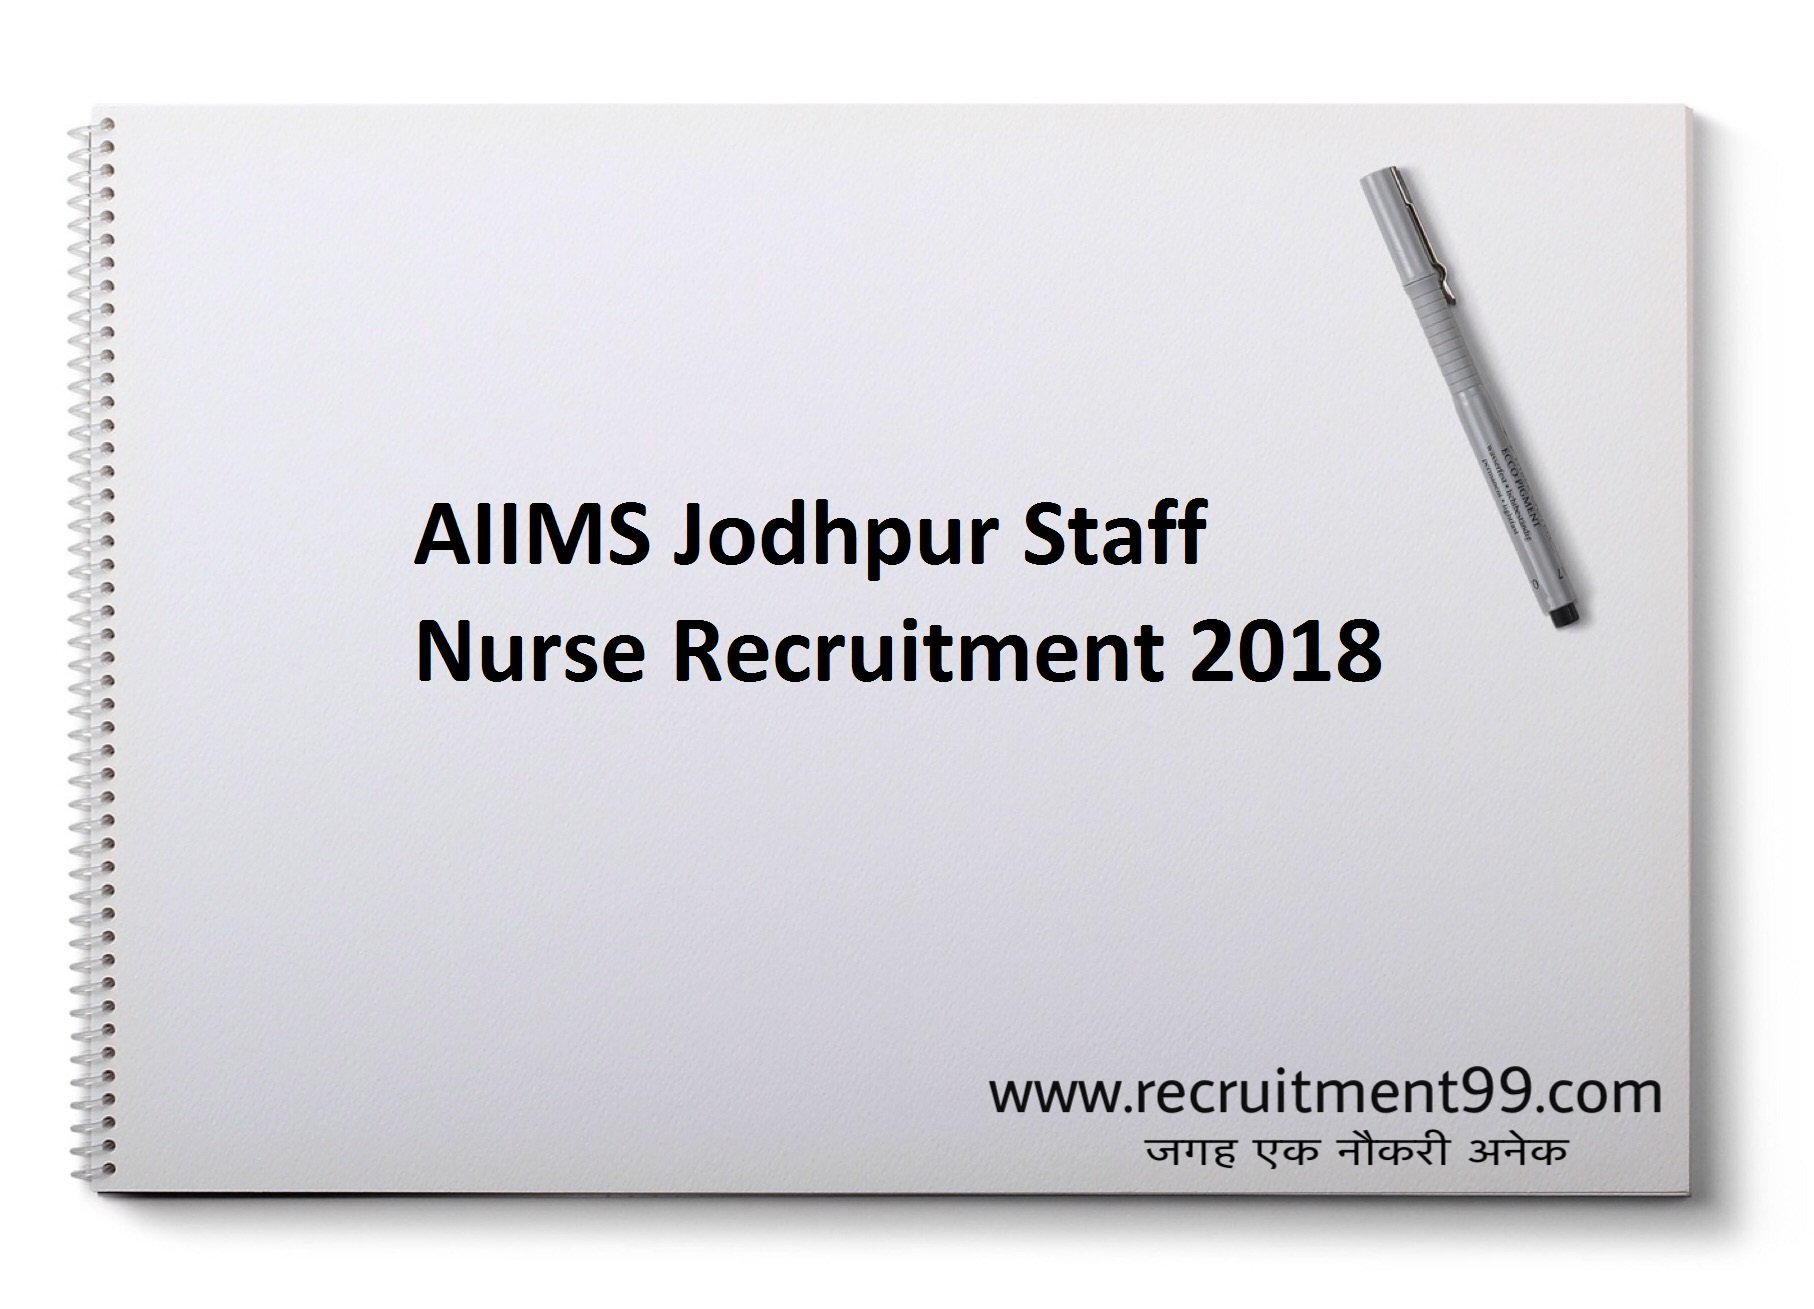 AIIMS Jodhpur Staff Nurse Recruitment Admit Card Result 2018